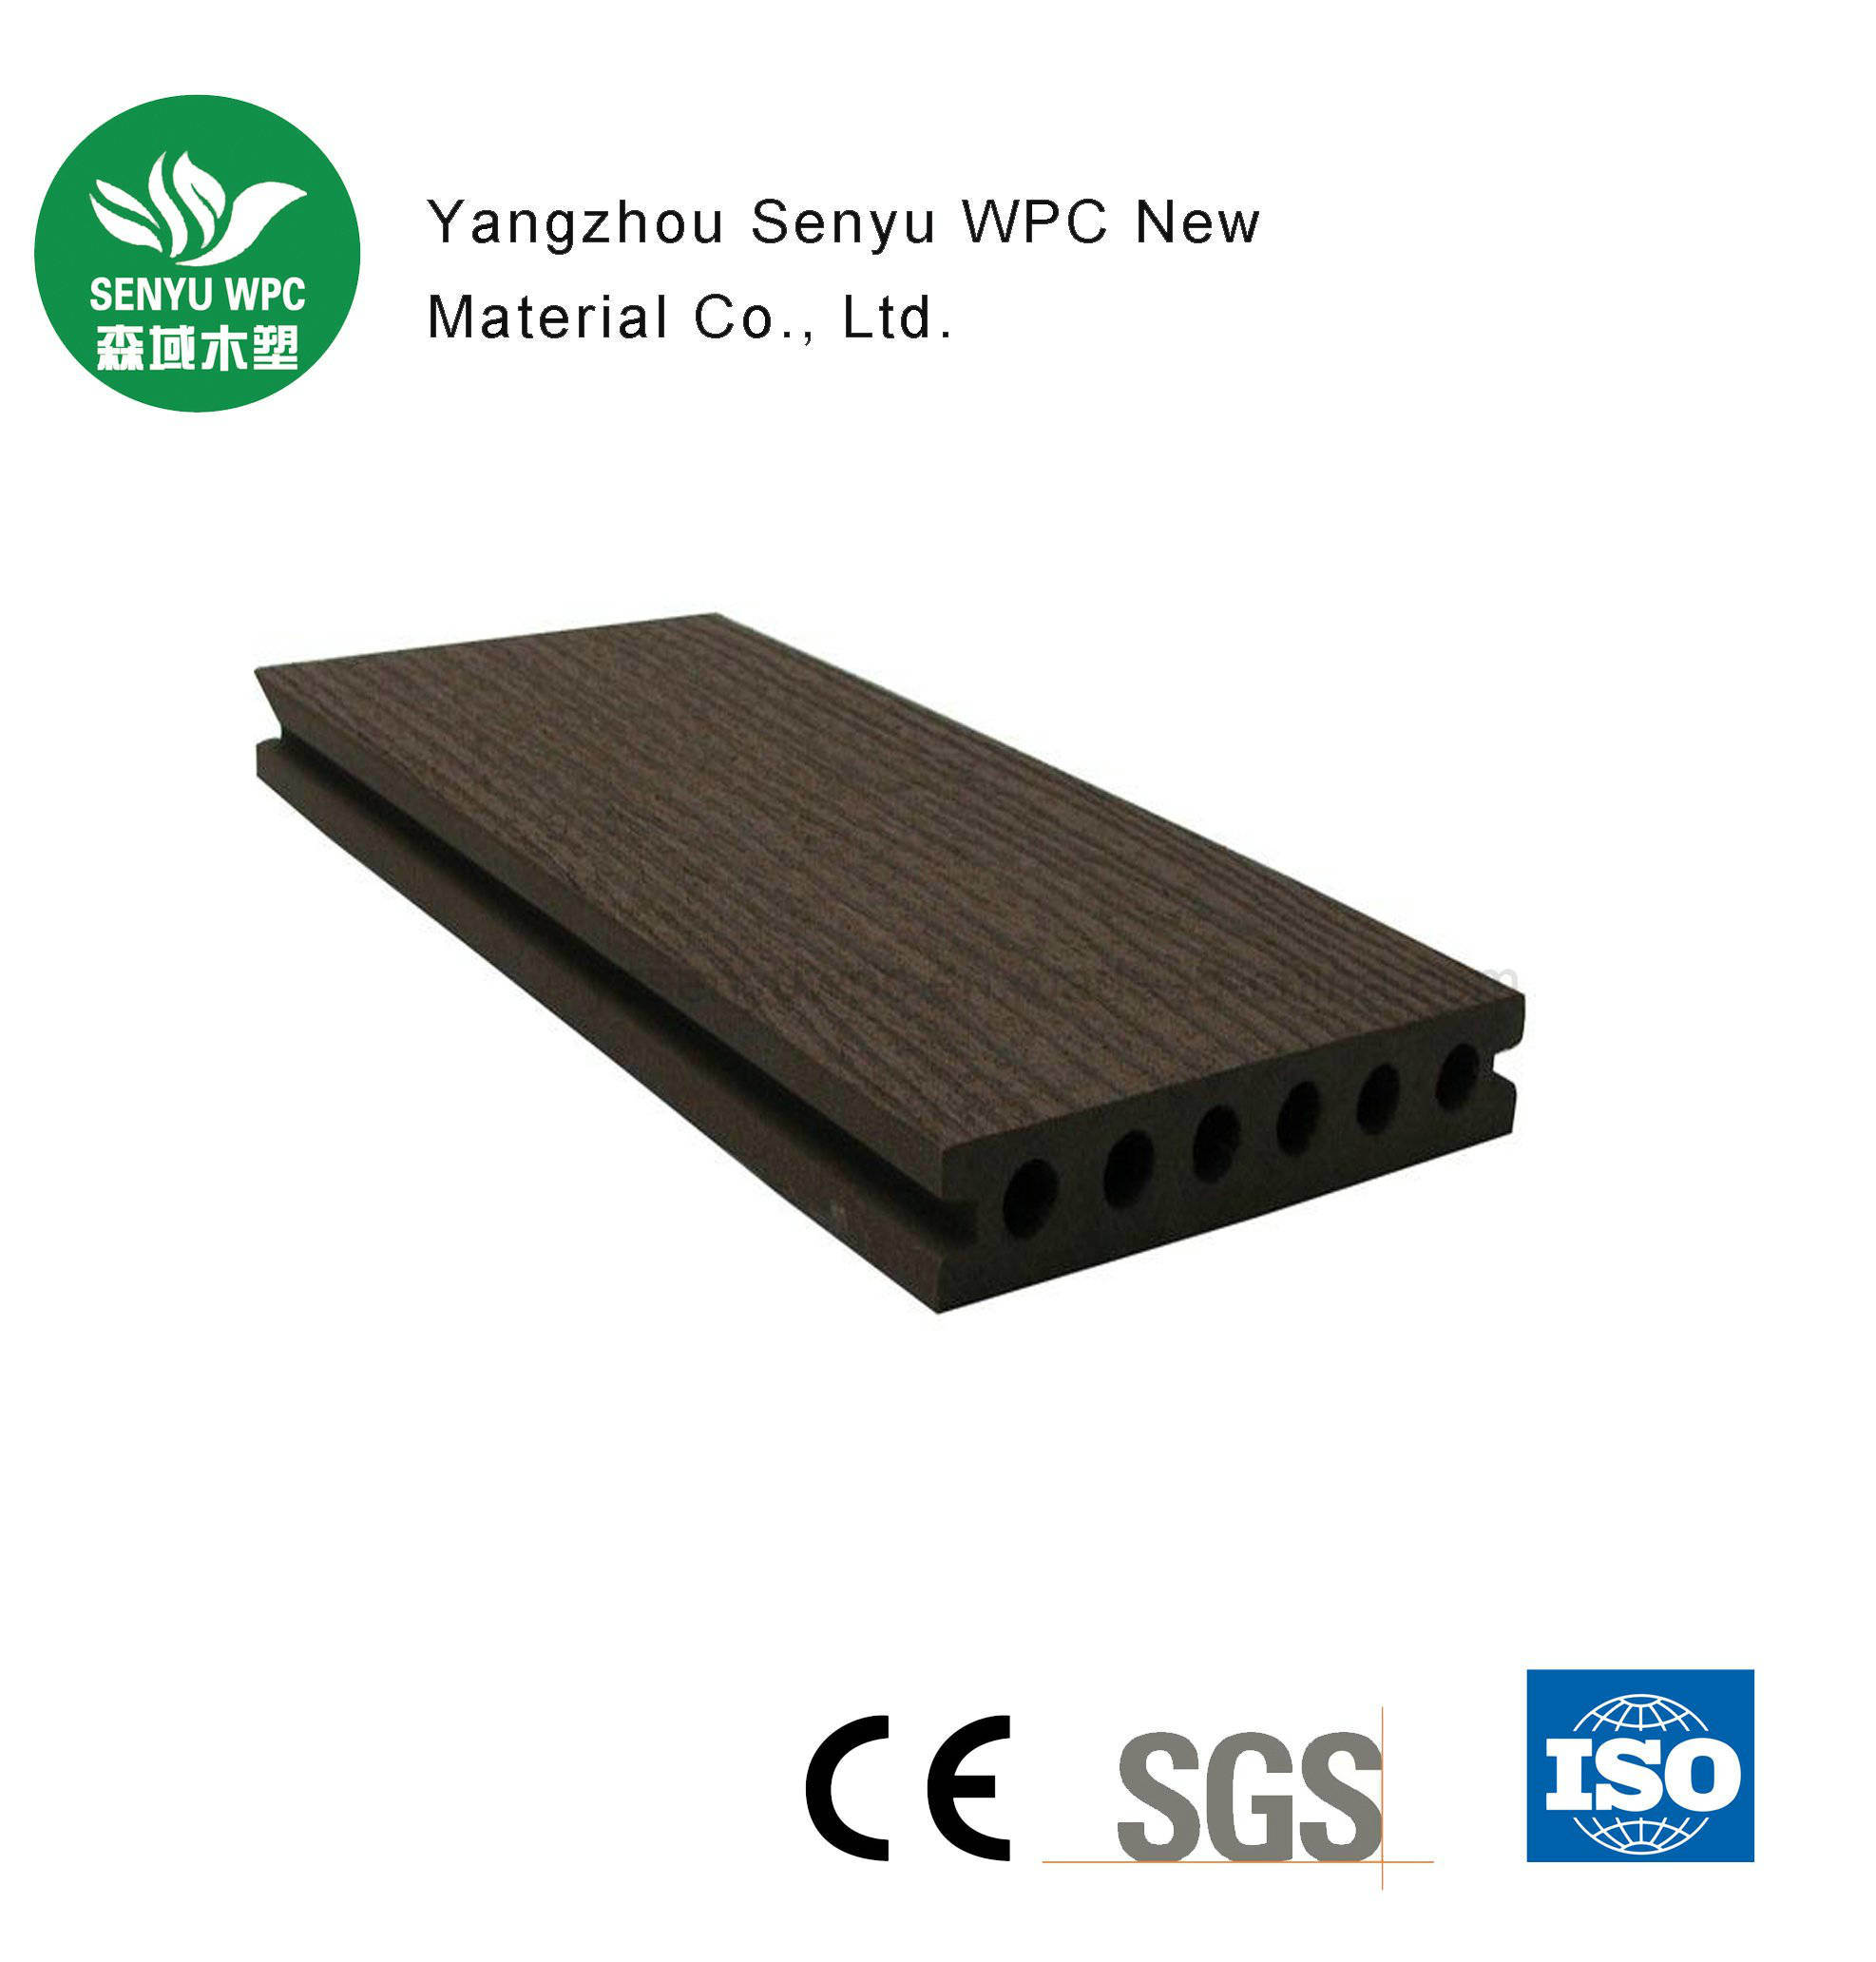 Outdoor Wood Plastic Composite WPC Decking with CE